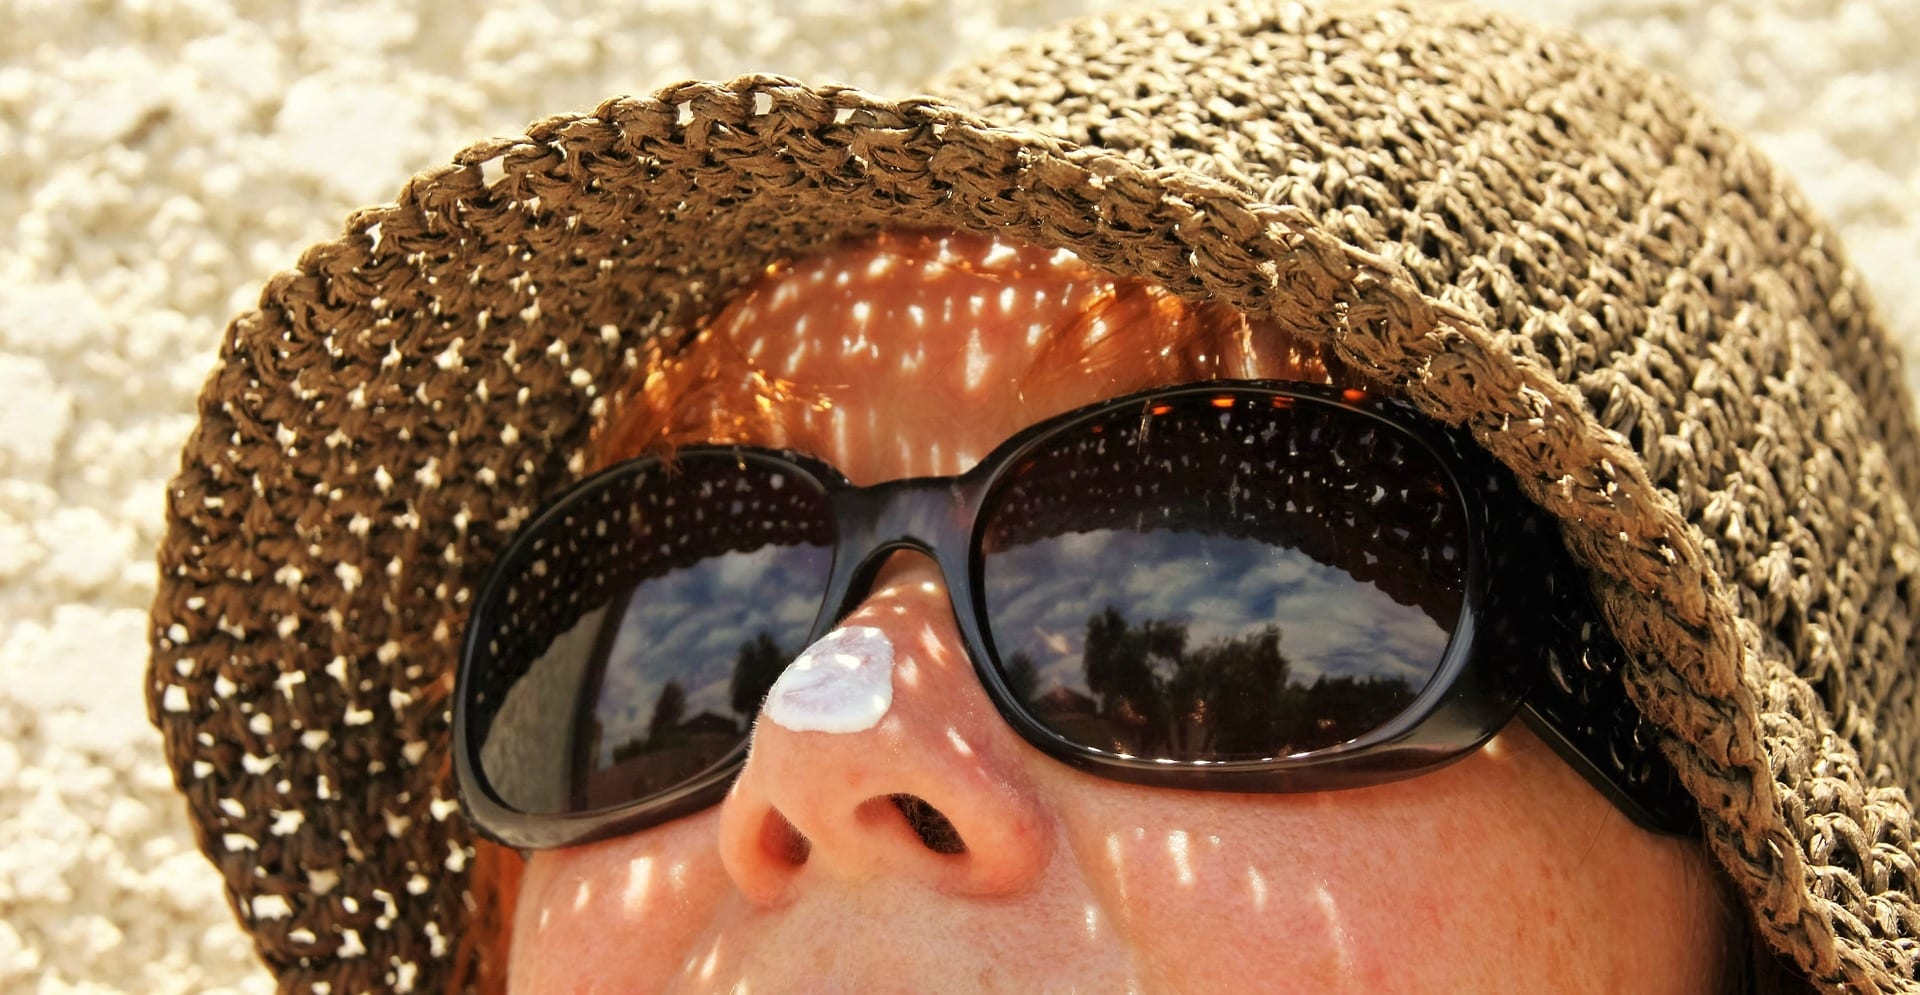 EU now allows a new chemical in sunscreens